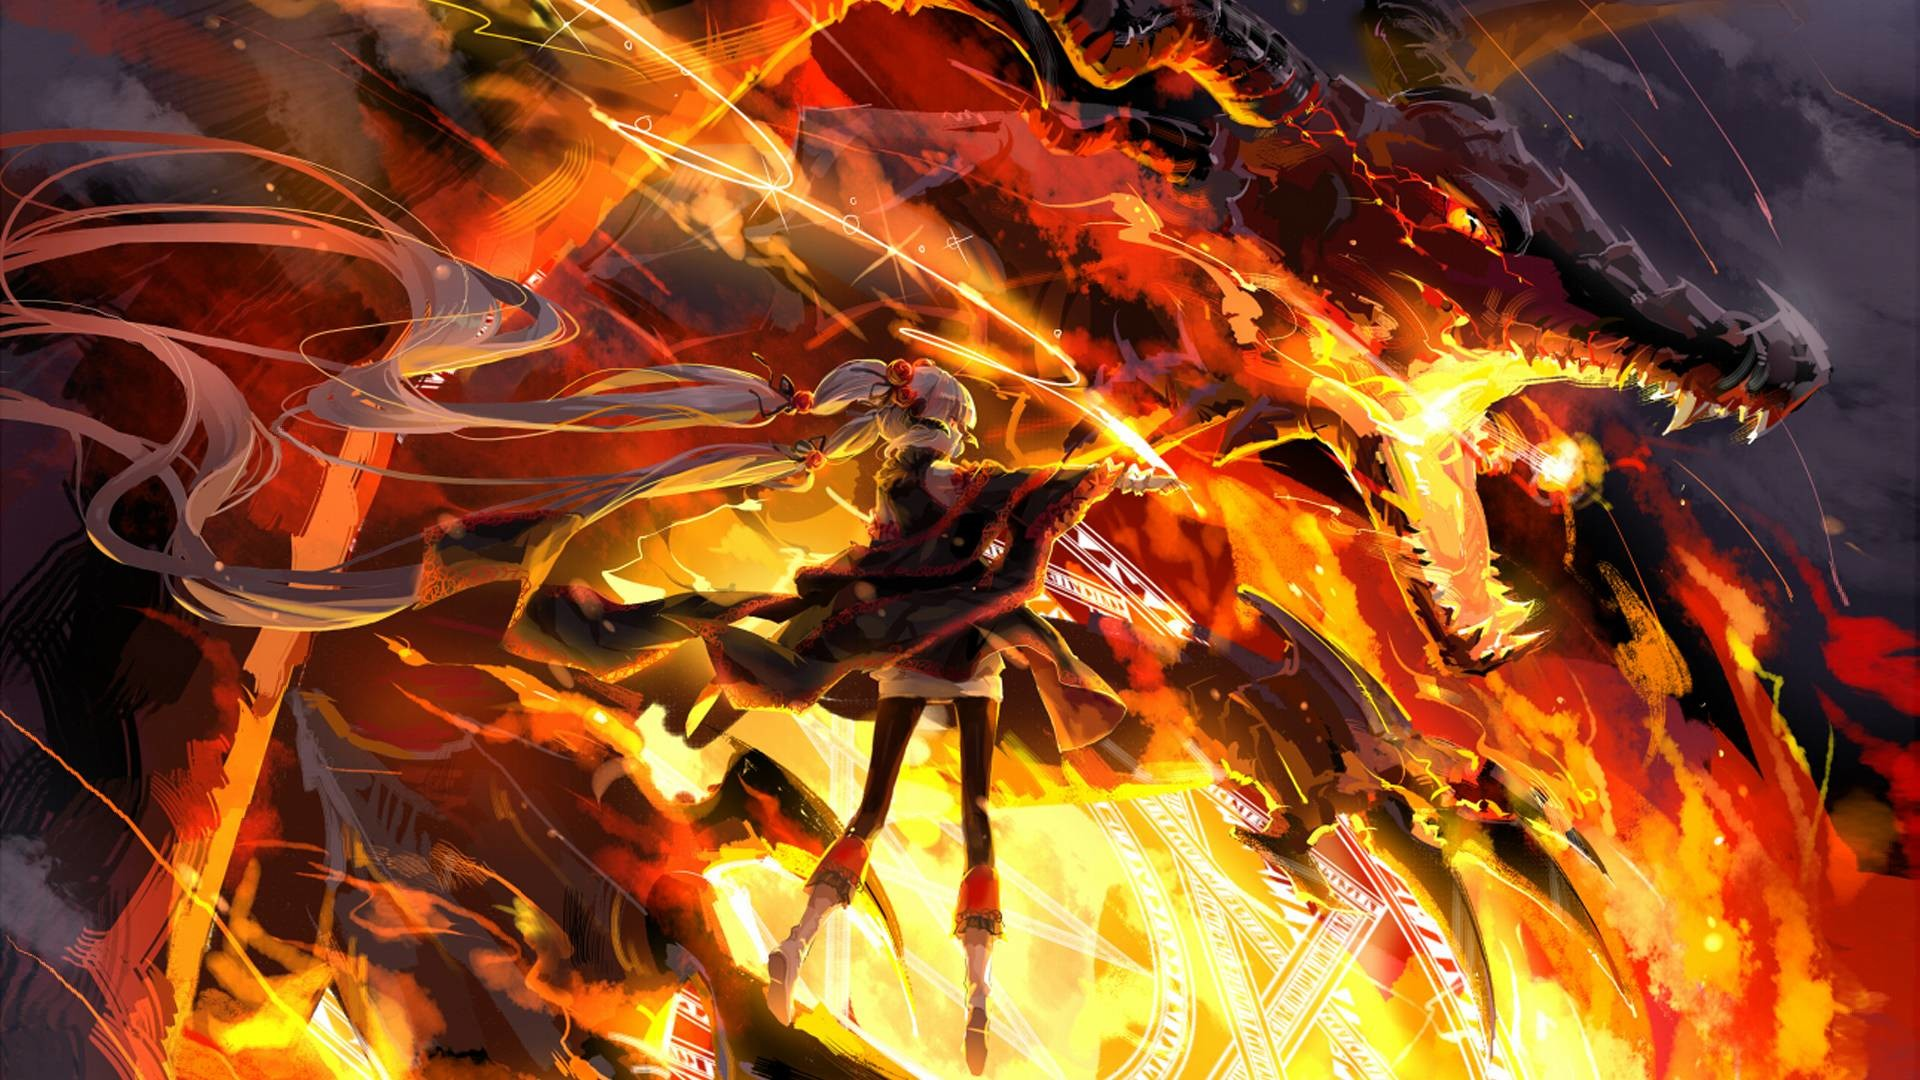 Fire Dragon Wallpaper